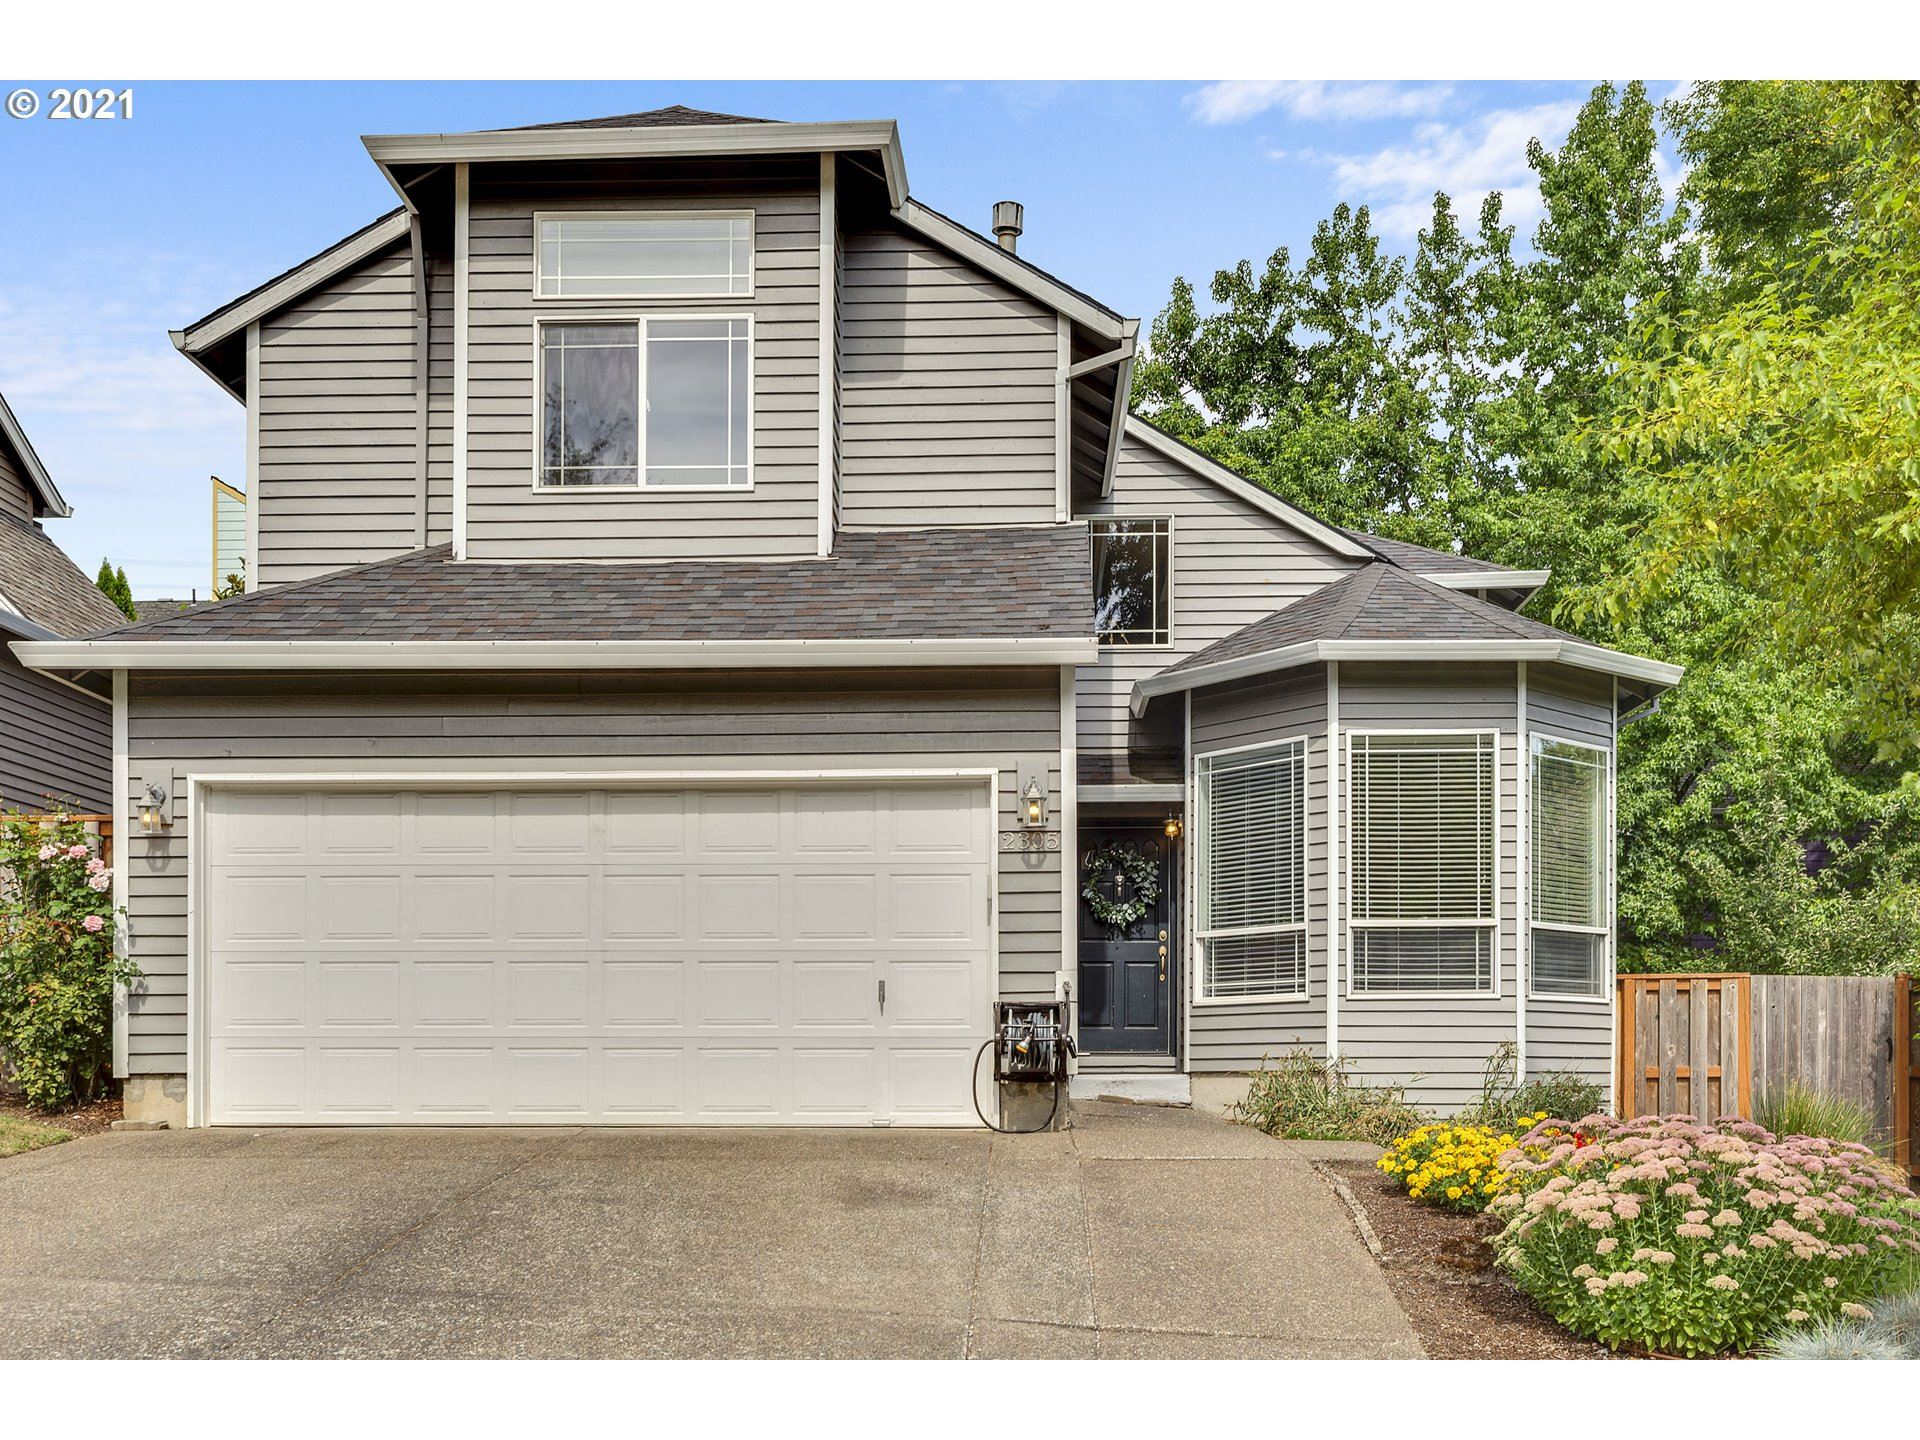 2305 SW QUINAULT CT, Portland, OR 97219 - MLS#: 21210937